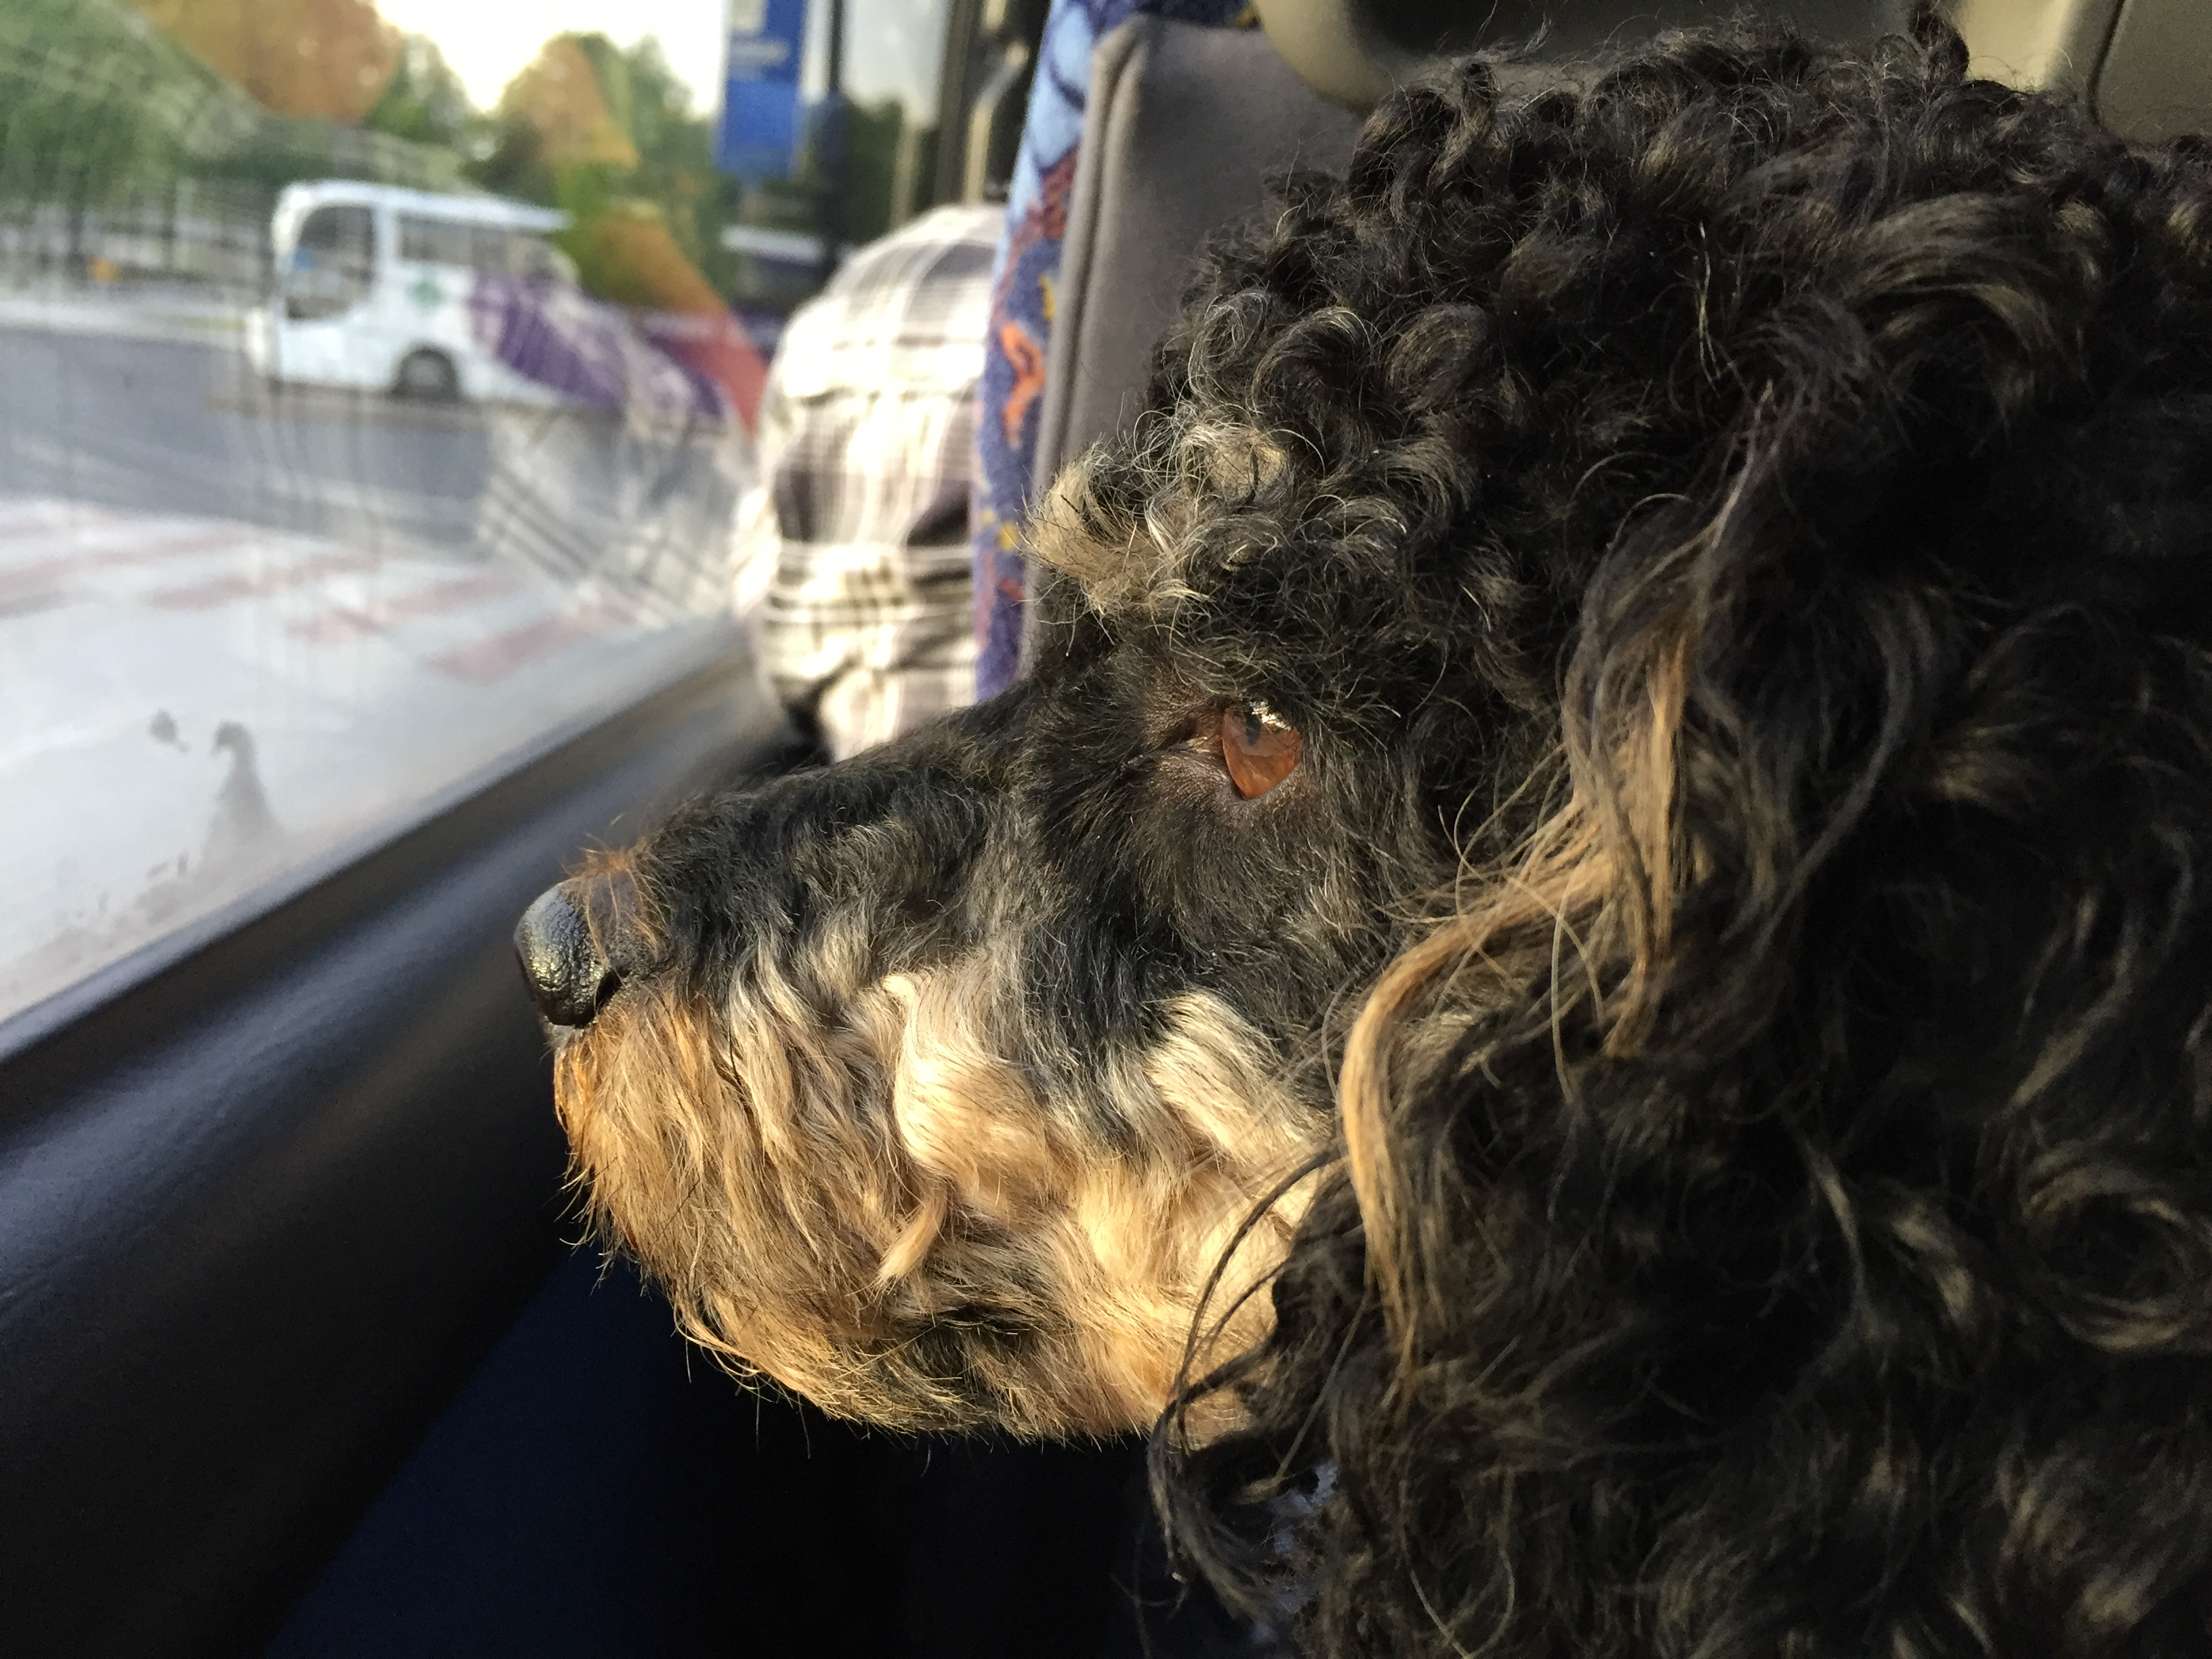 Dog looking out the window on a bus in Finland